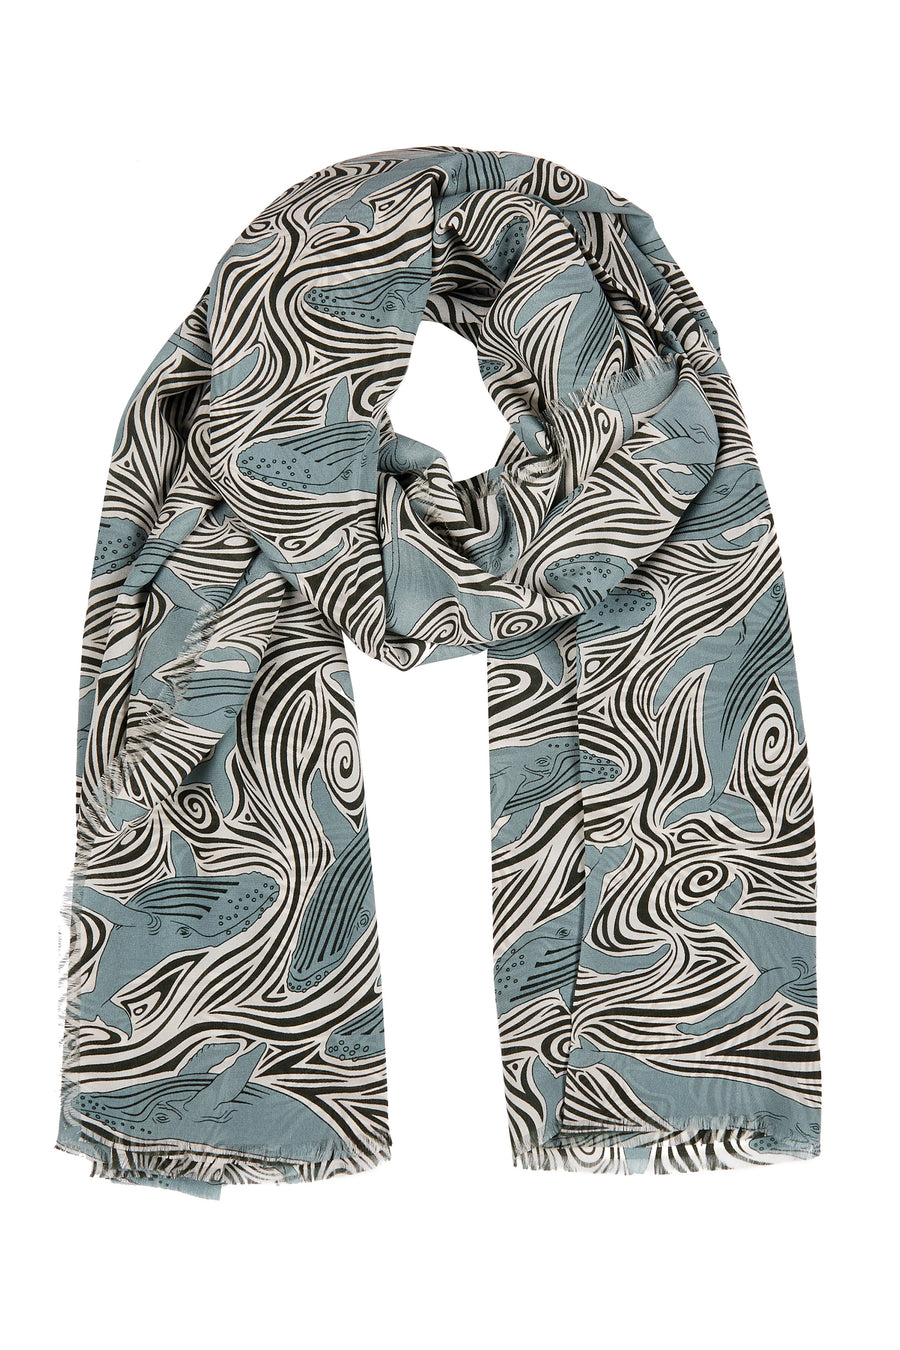 Silk scarf sarong in Whale monochrome design by Lotty B hand screen printed on crepe-de-chine. Mustique island lifestyle.